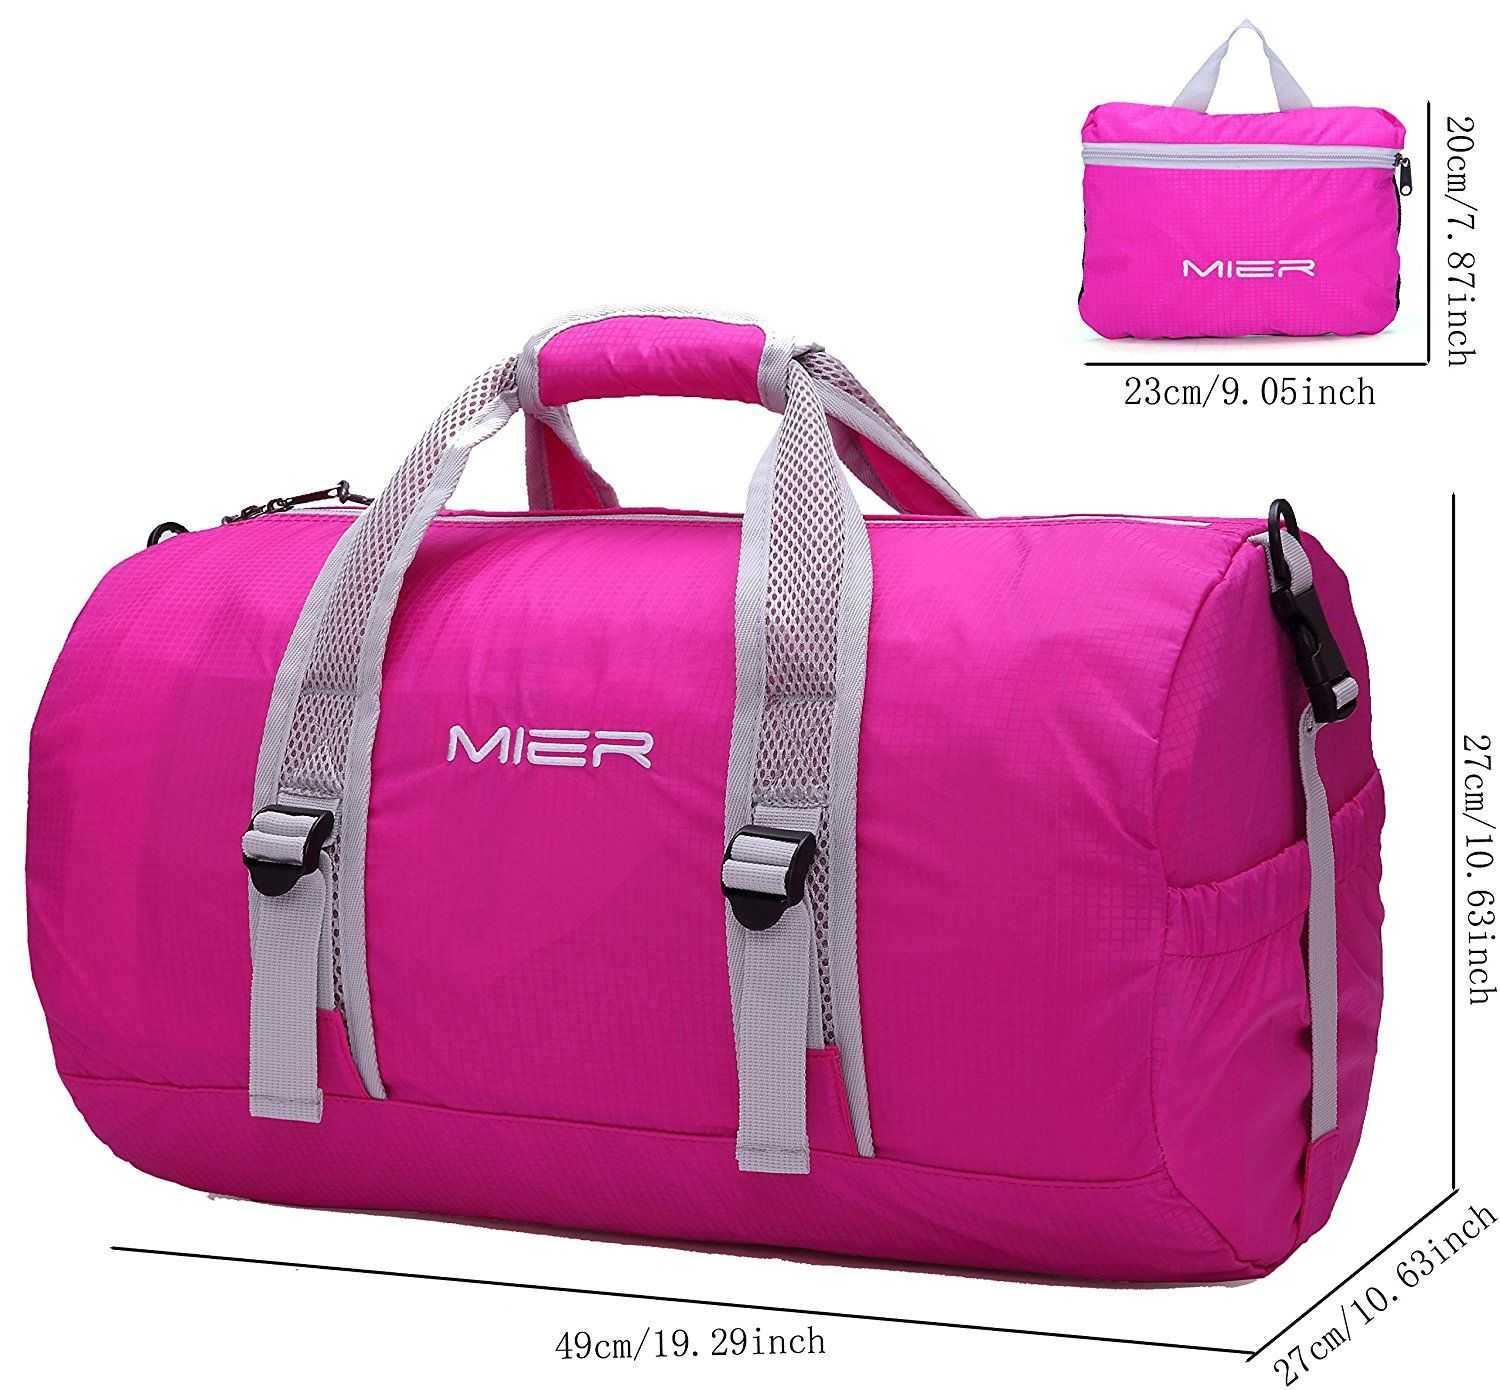 78c5eca46 MIER Foldable Small Duffel Bag Lightweight for Sports, Gyms, Yoga, Travel,  Overnight